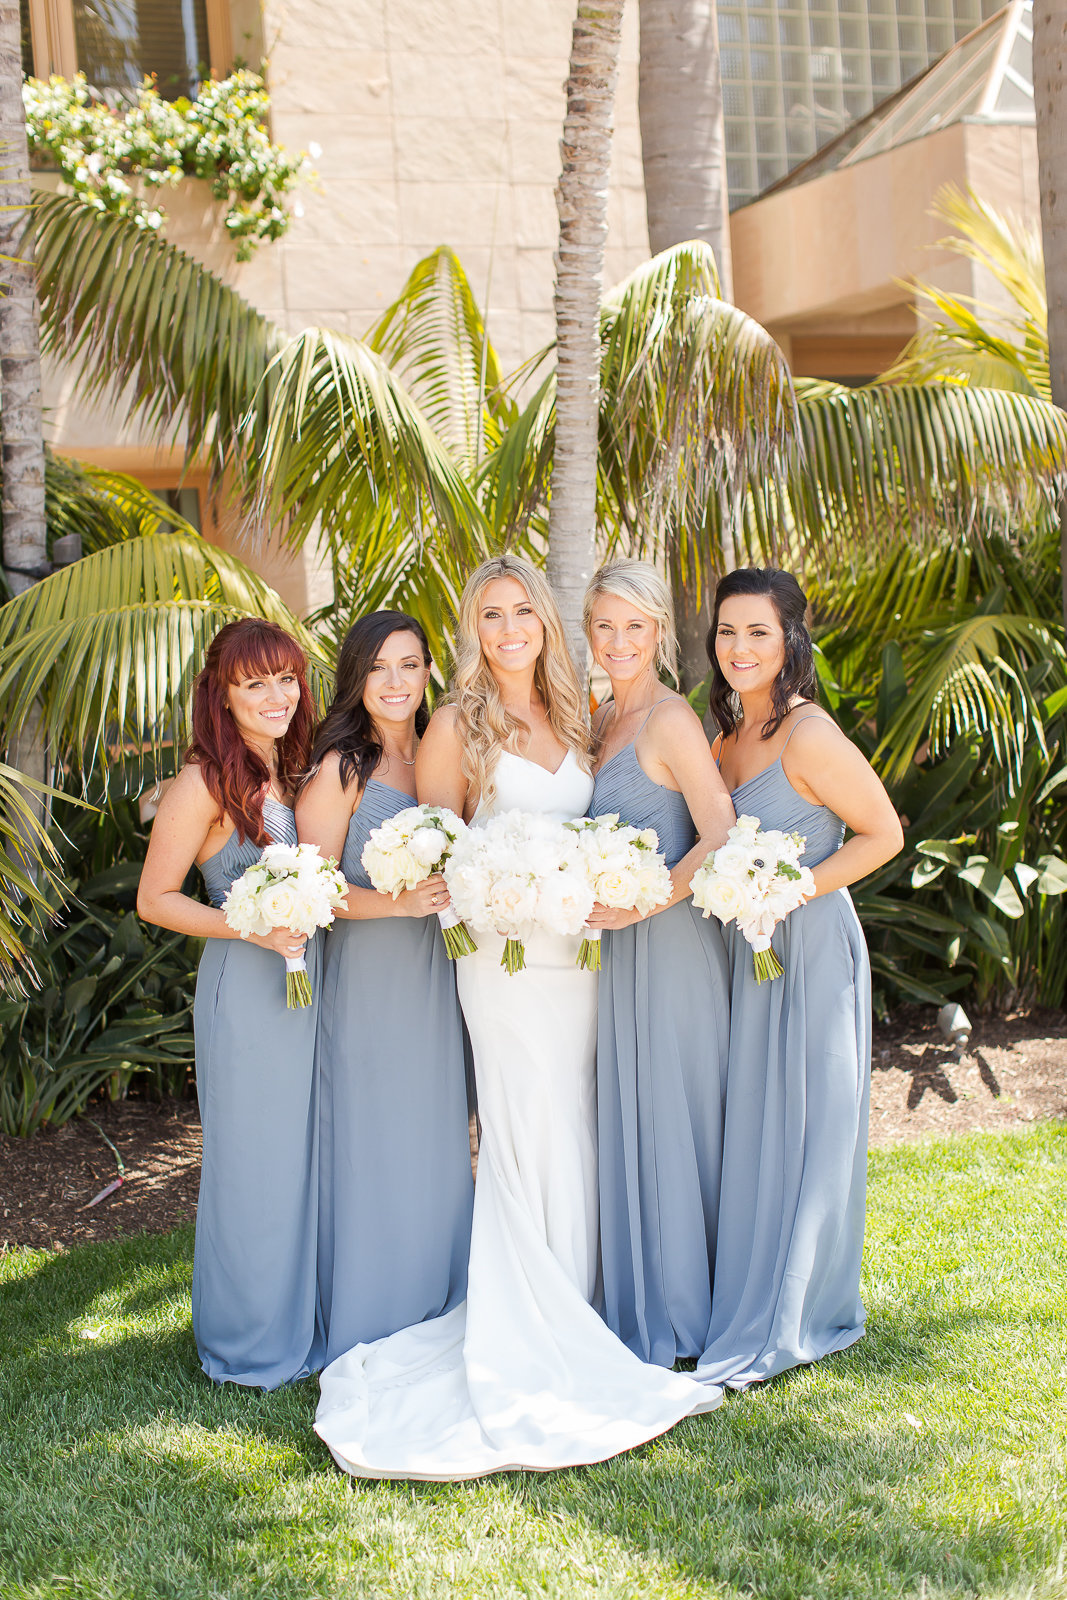 Newport Beach Caliornia Destination Wedding Theresa Bridget Photography-33